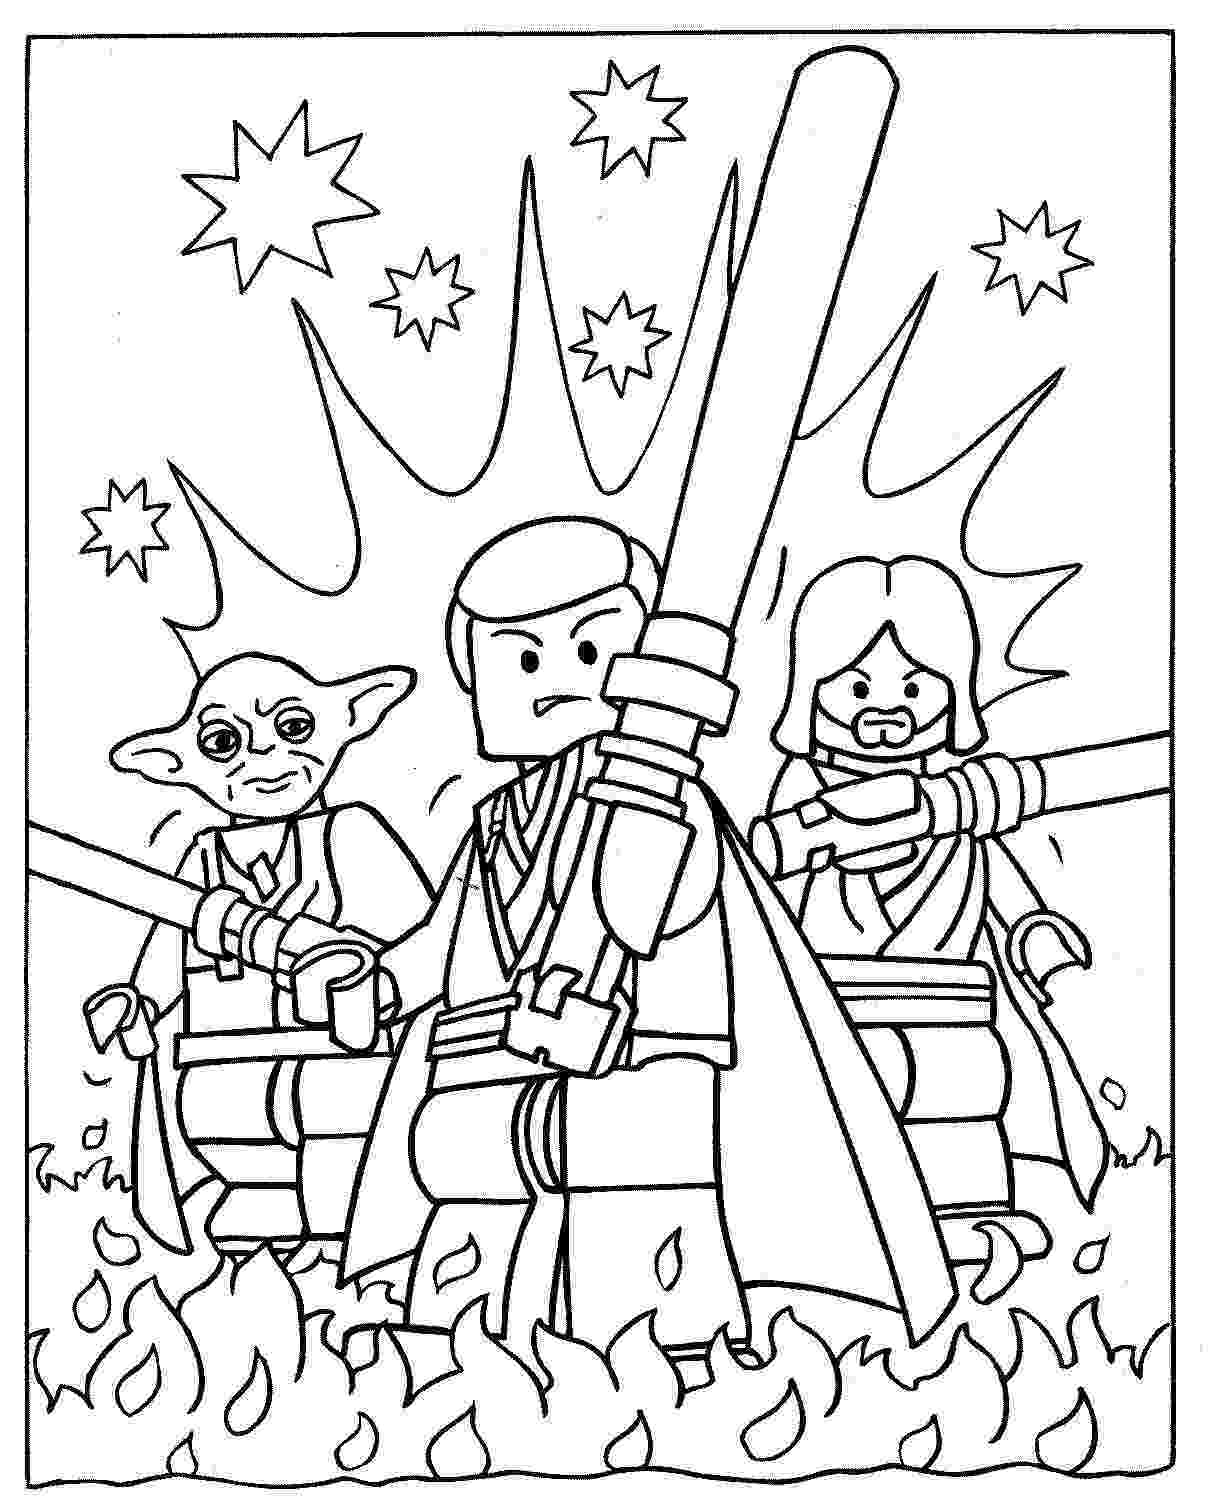 star wars free coloring pages star wars coloring pages 2018 dr odd star pages wars free coloring